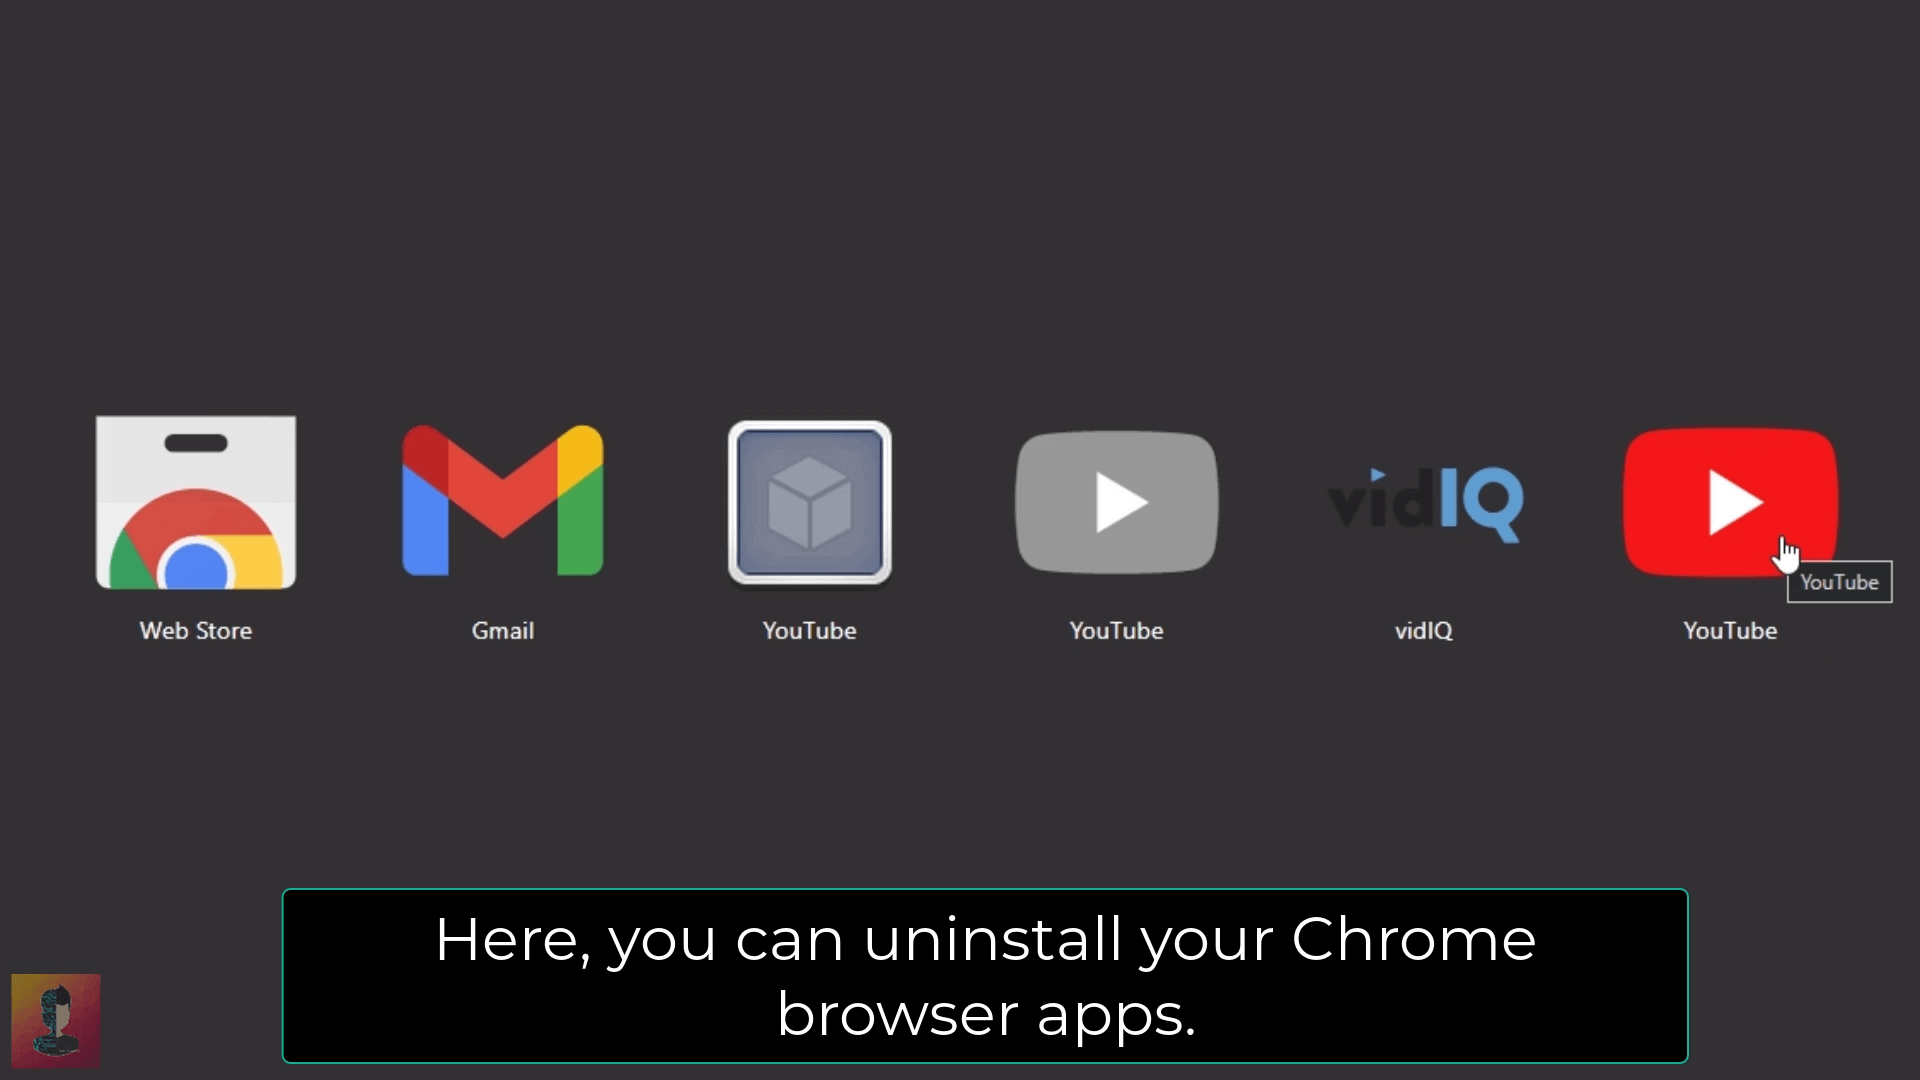 Step_03 to remove google chrome apps